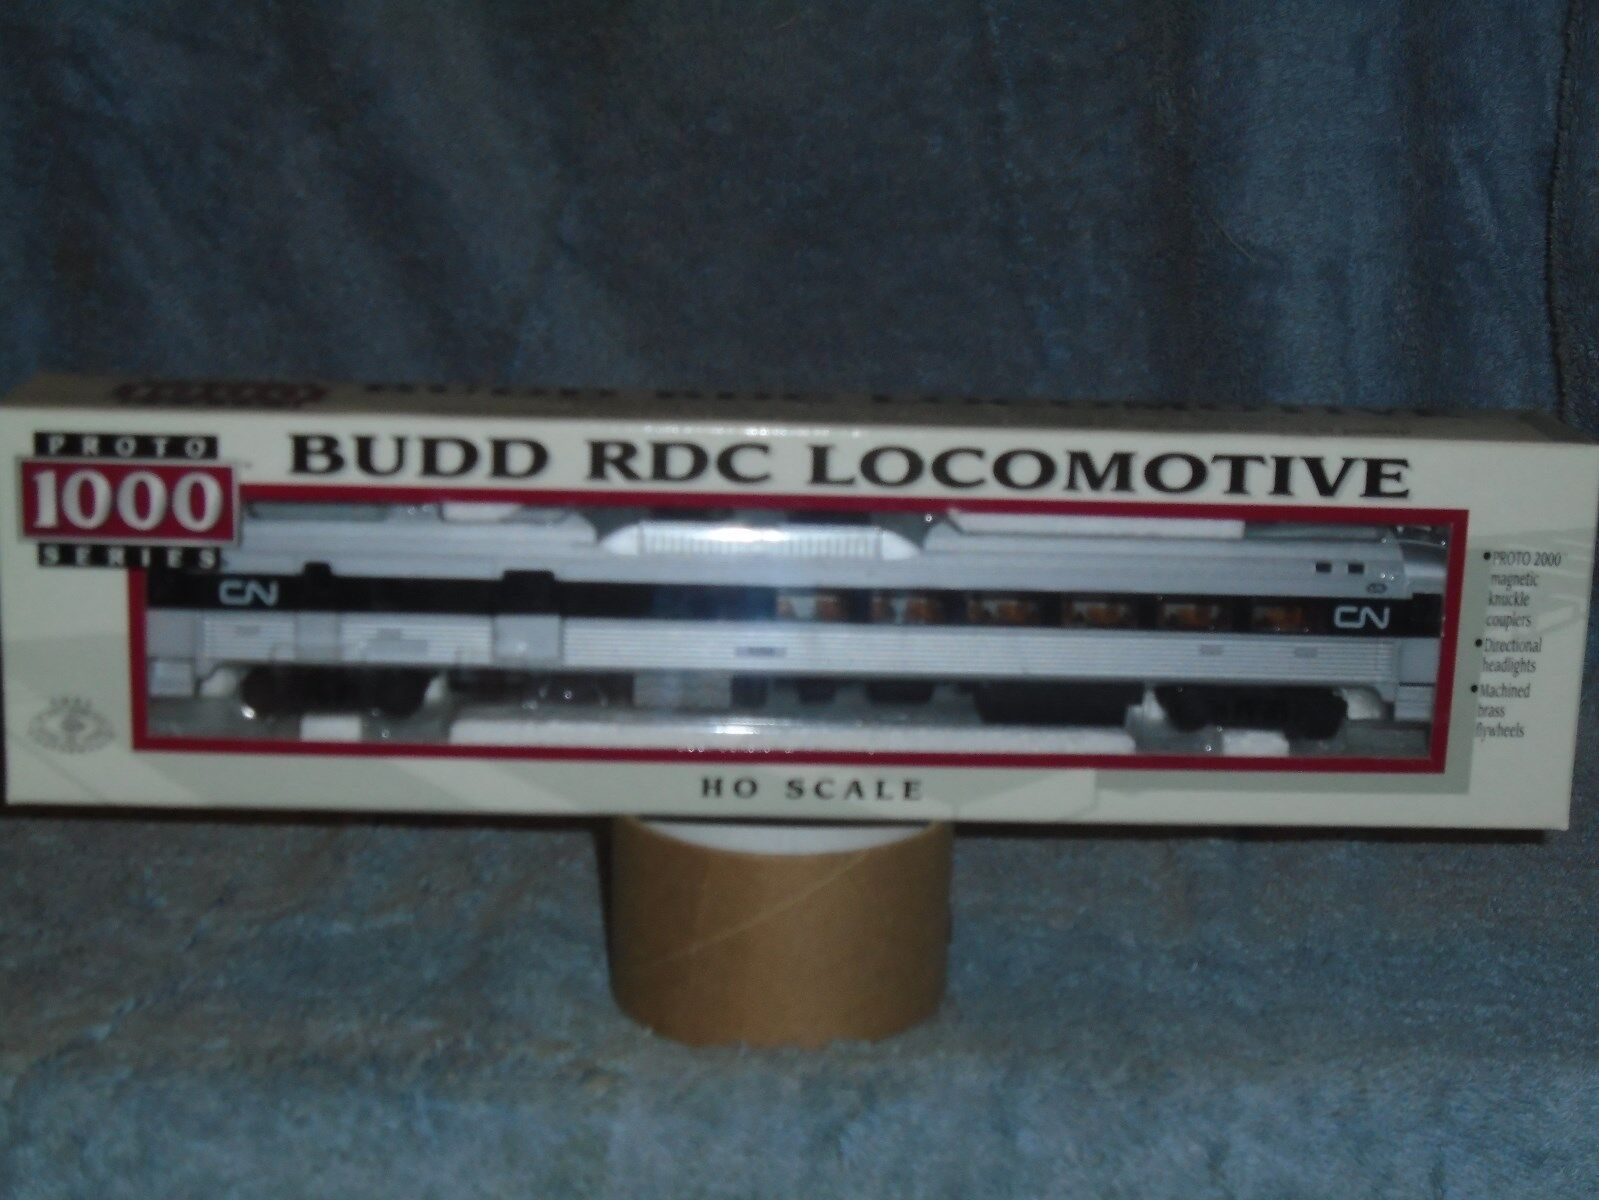 ProssoO 1000 HO SCALE  239732 BUDD RDC LOCOMOTIVE CANADIAN NATIONAL B R  6350